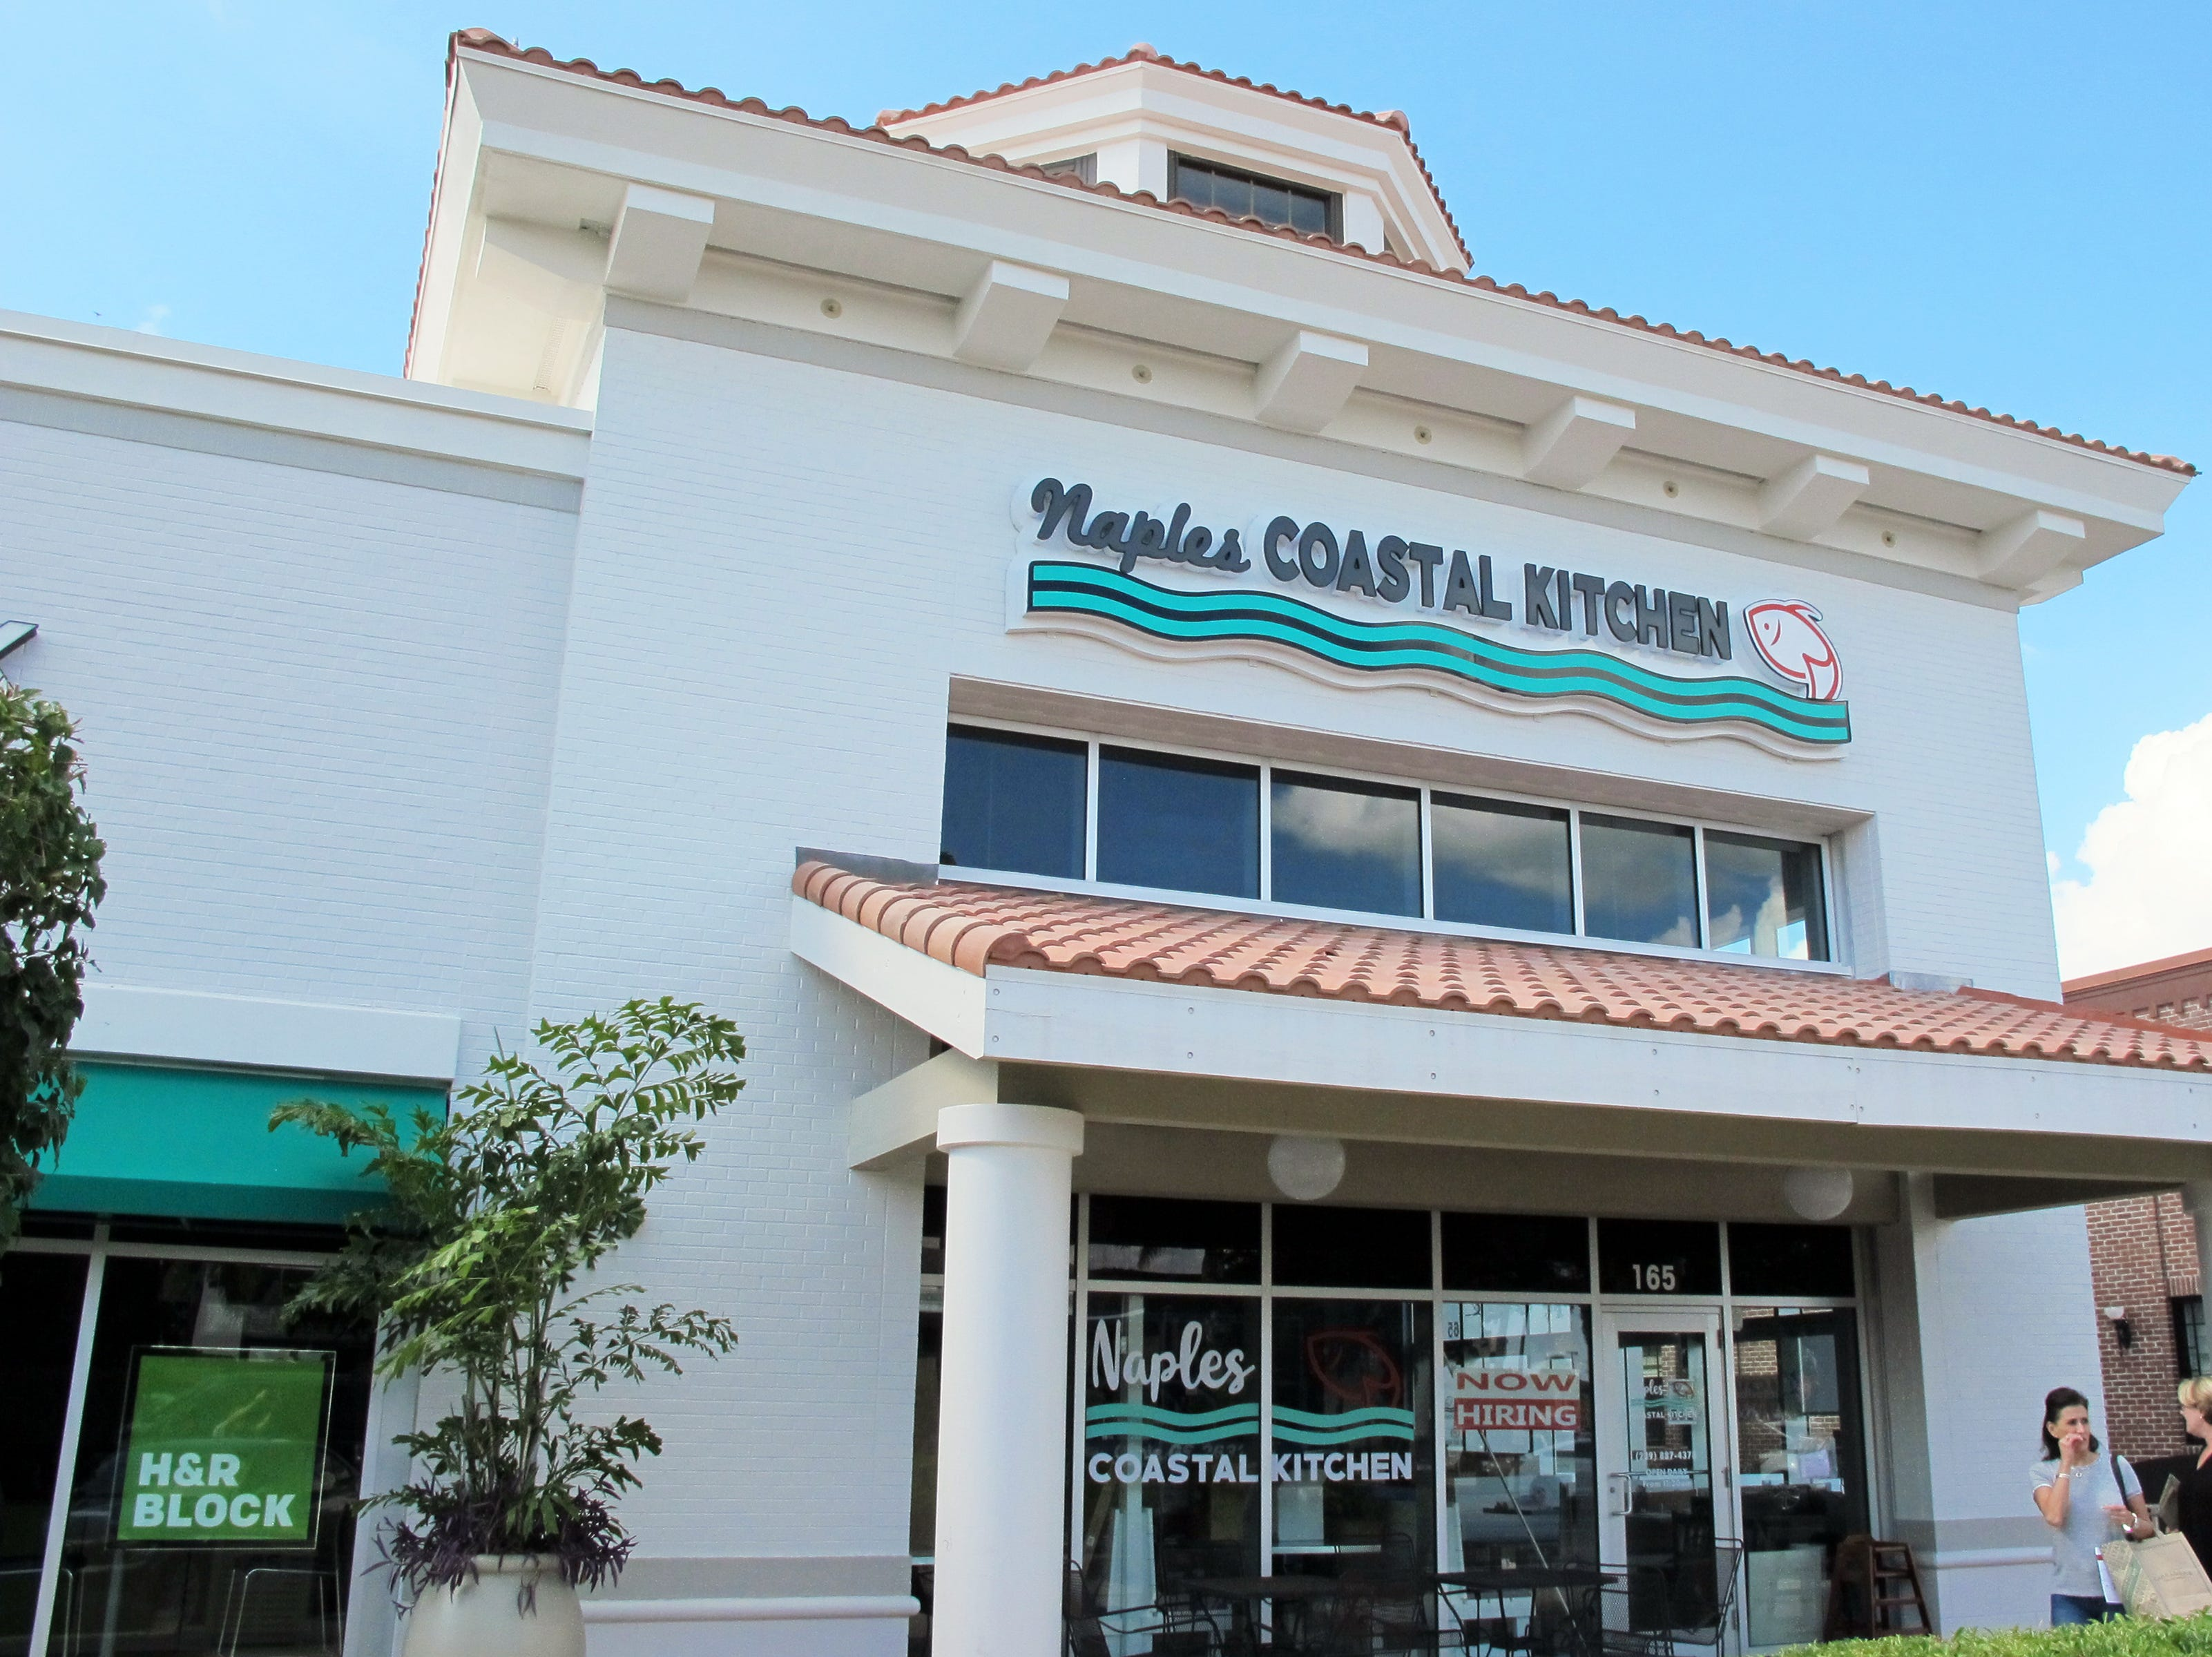 Naples Coastal Kitchen has expanded beyond Naples with a second location at Gulf Coast Town Center in San Carlos Park.